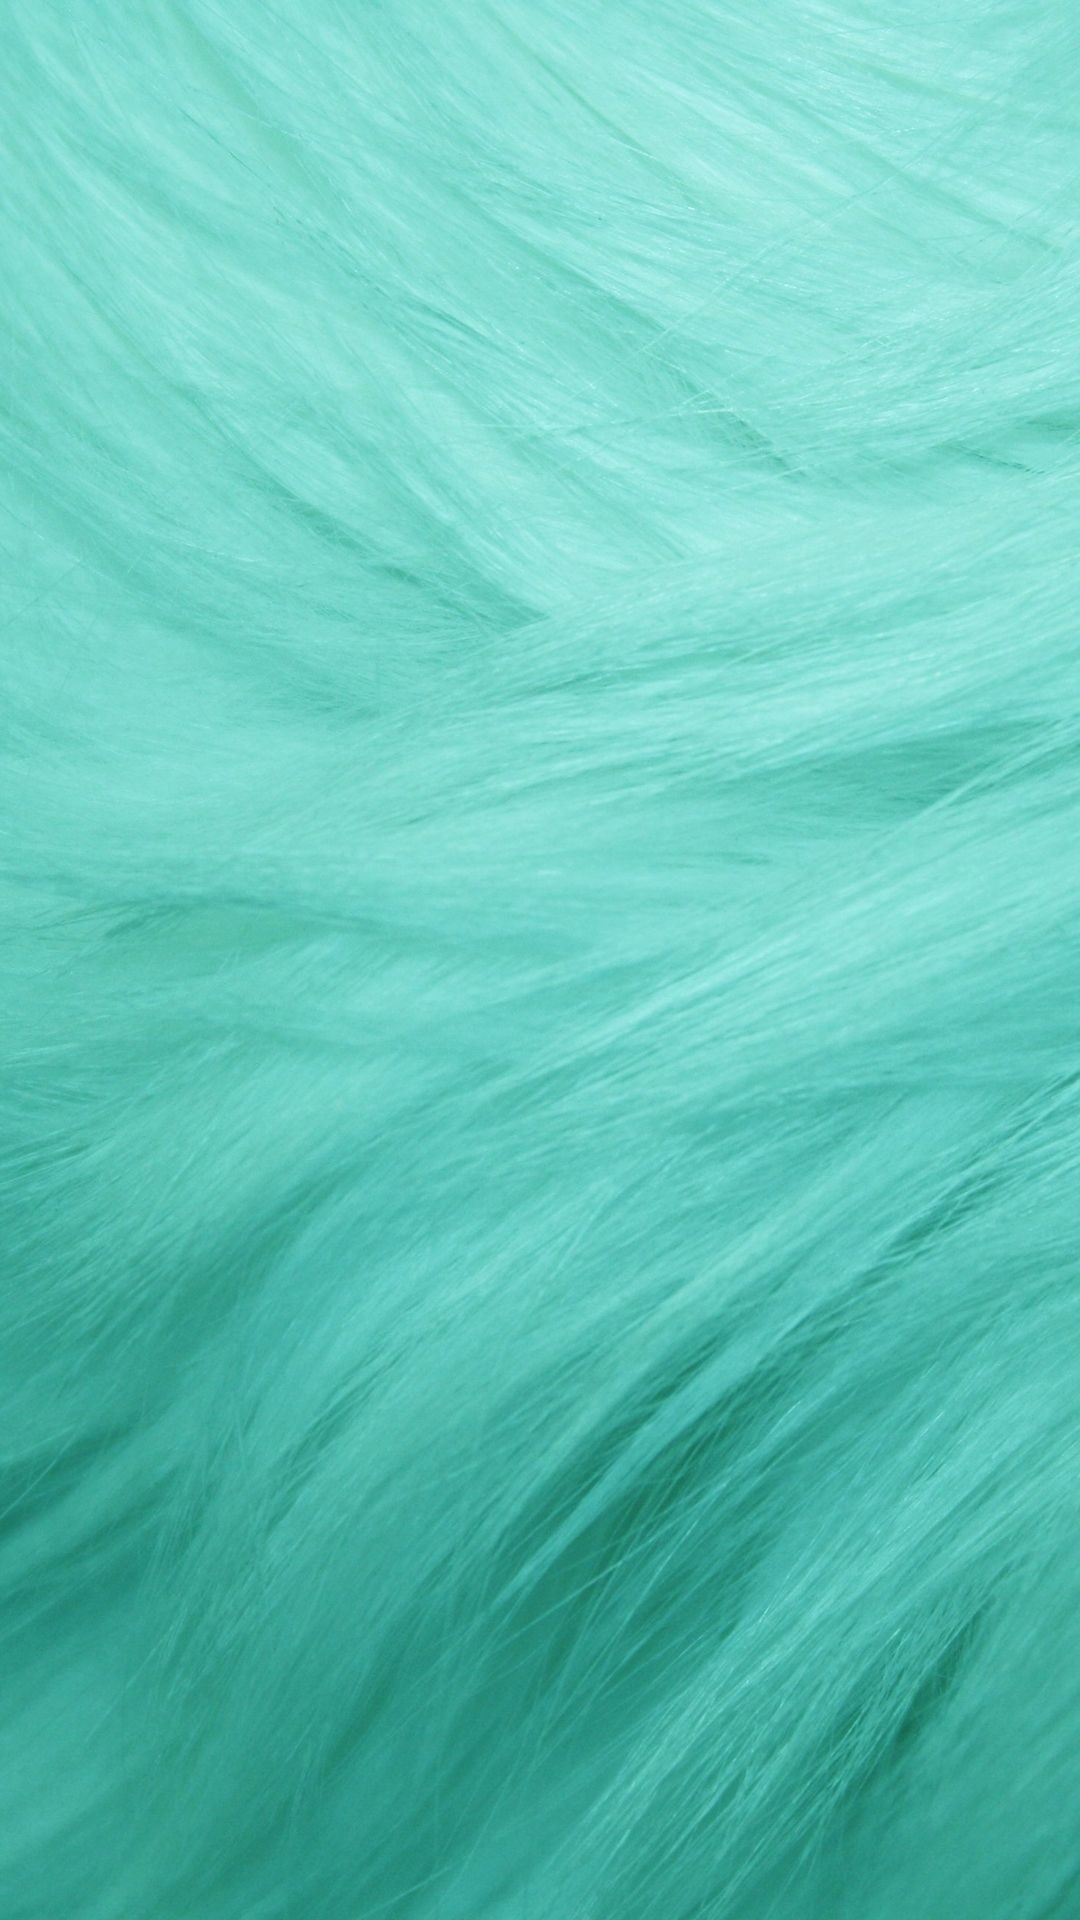 Res: 1080x1920, Teal Fur Texture - Tap to see more fluffy wallpapers! - @mobile9